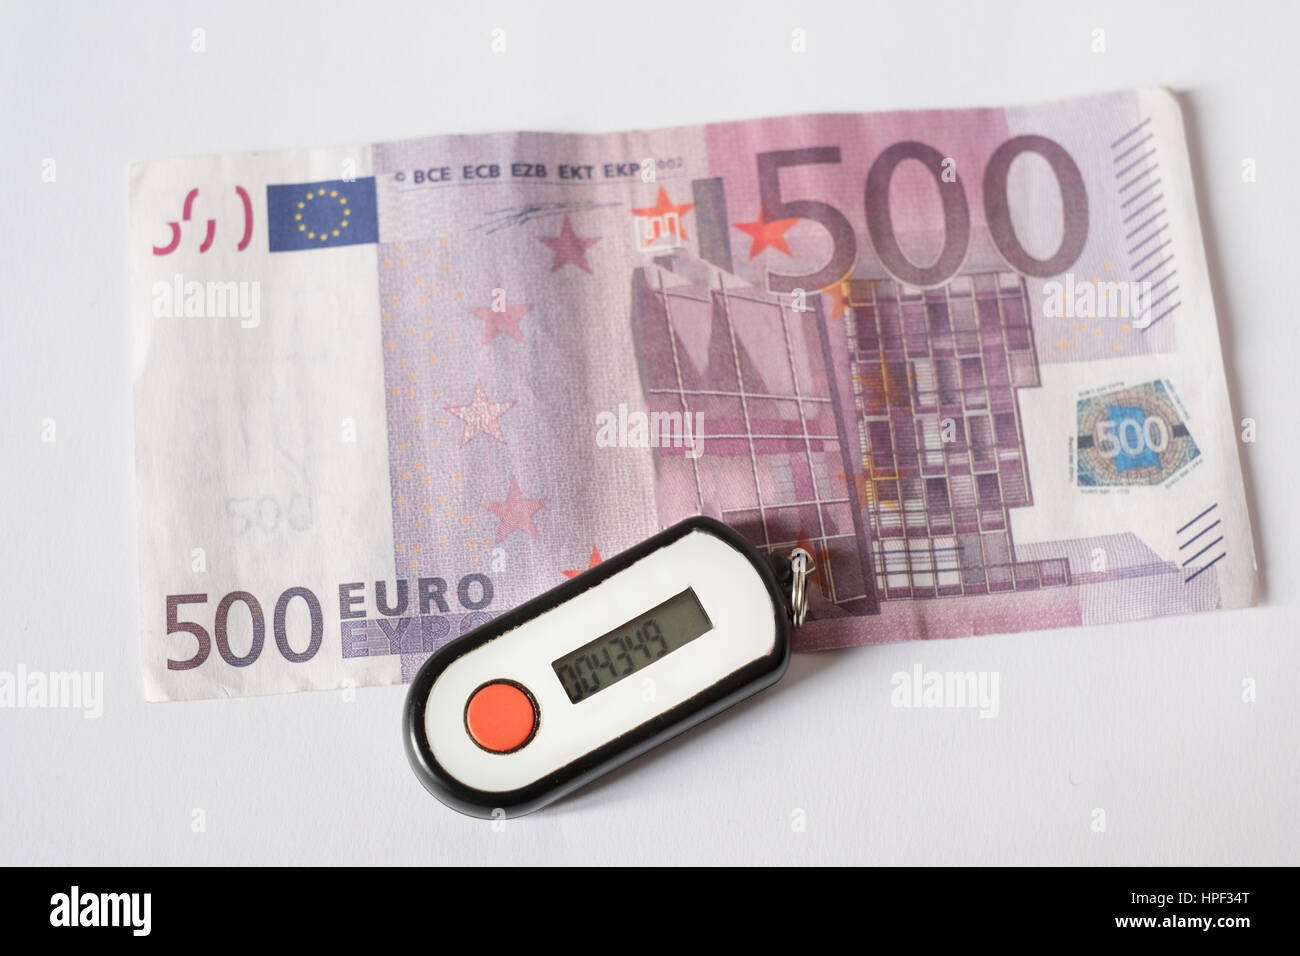 Security pin banking generator and euro currency - Stock Image